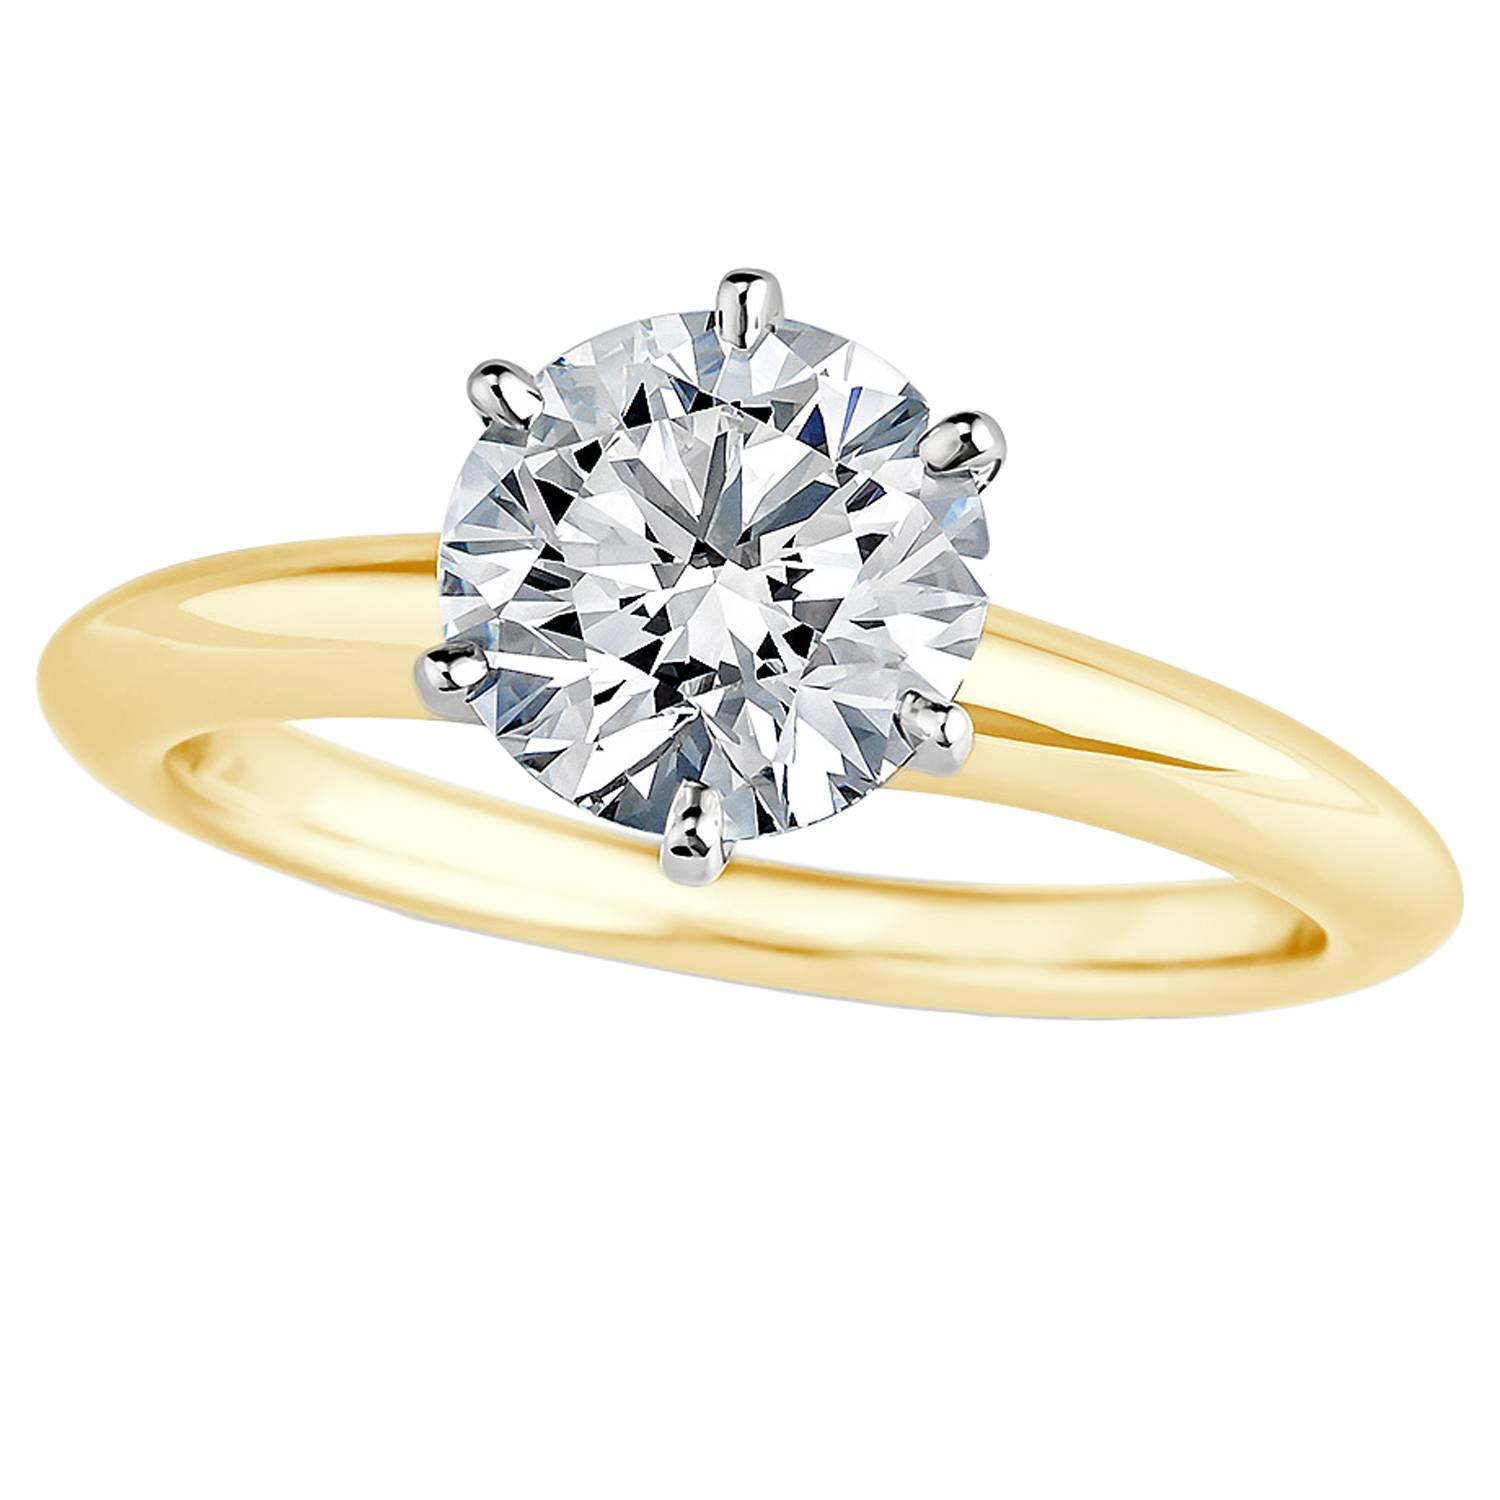 ring ersa shop large white engagement home gold giannis online rings diamond jewellers